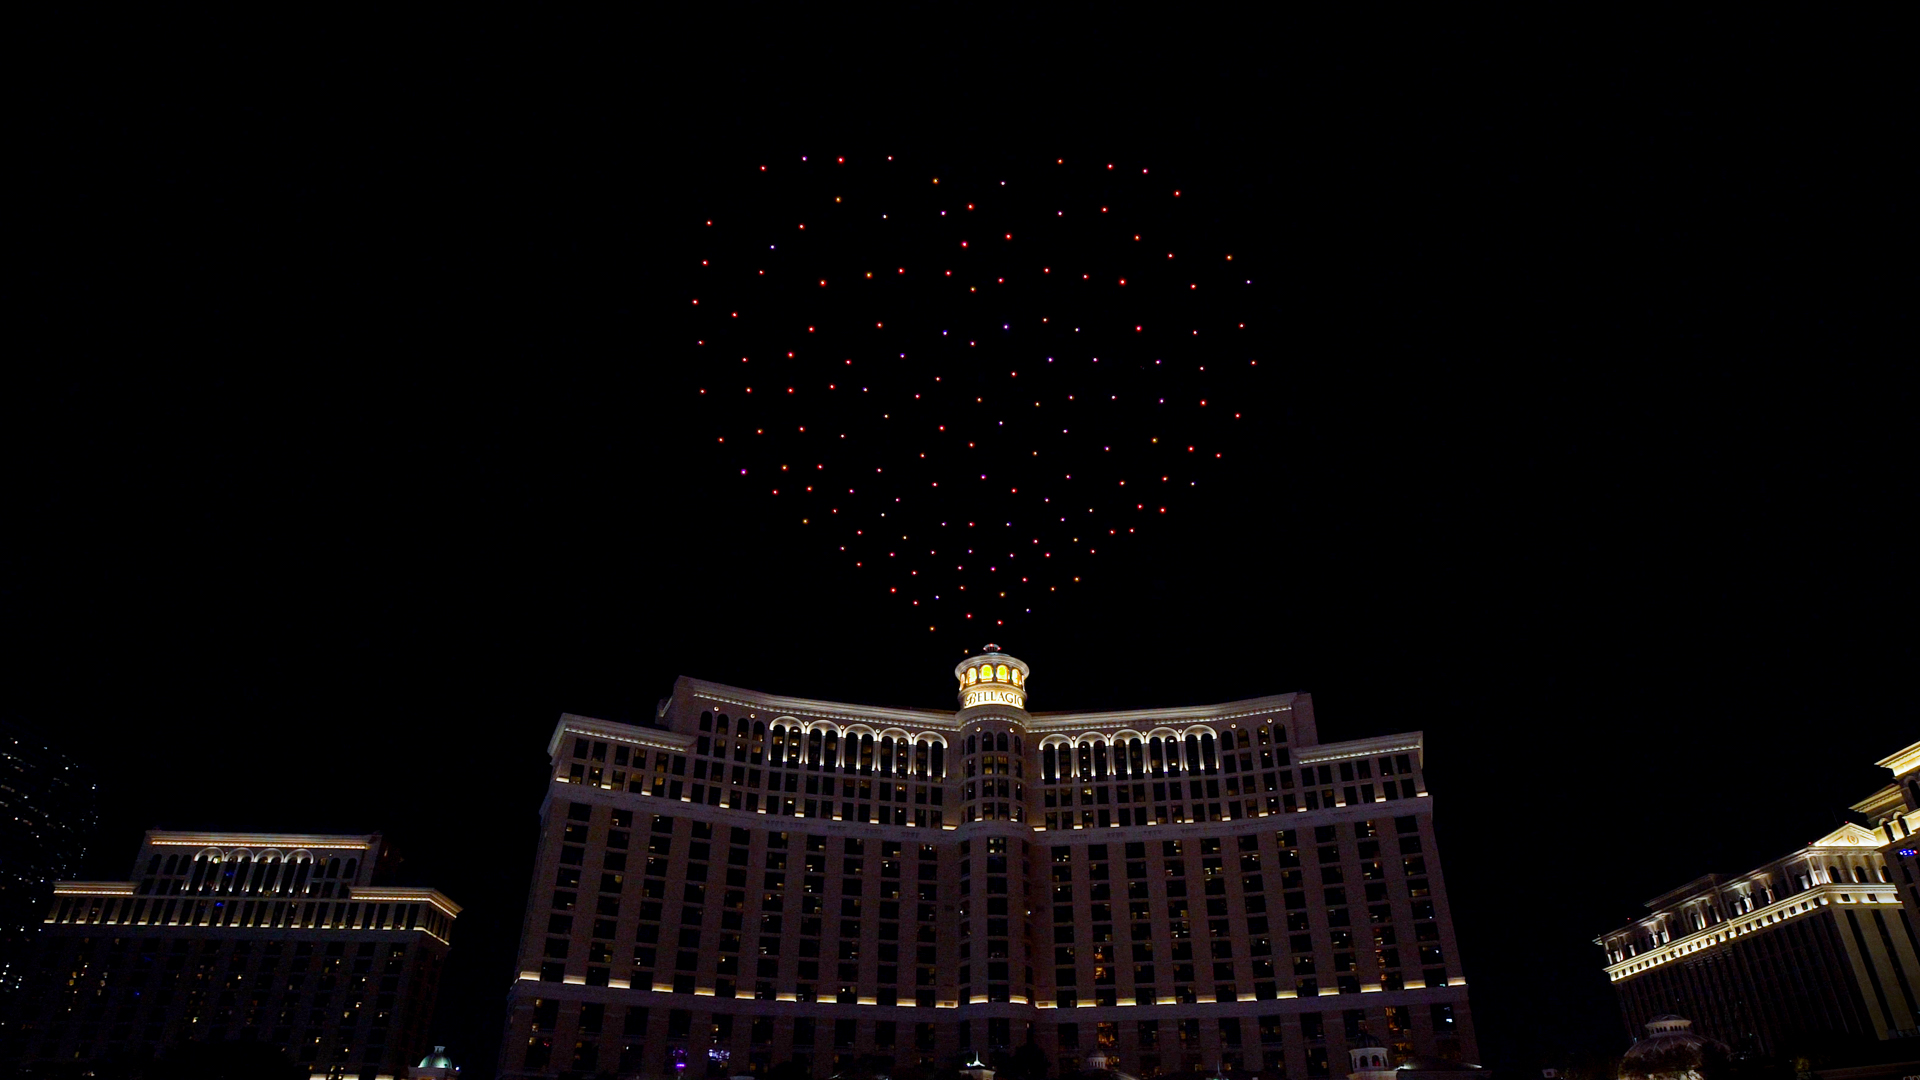 Intel-Lighshow-Bellagio-2-5